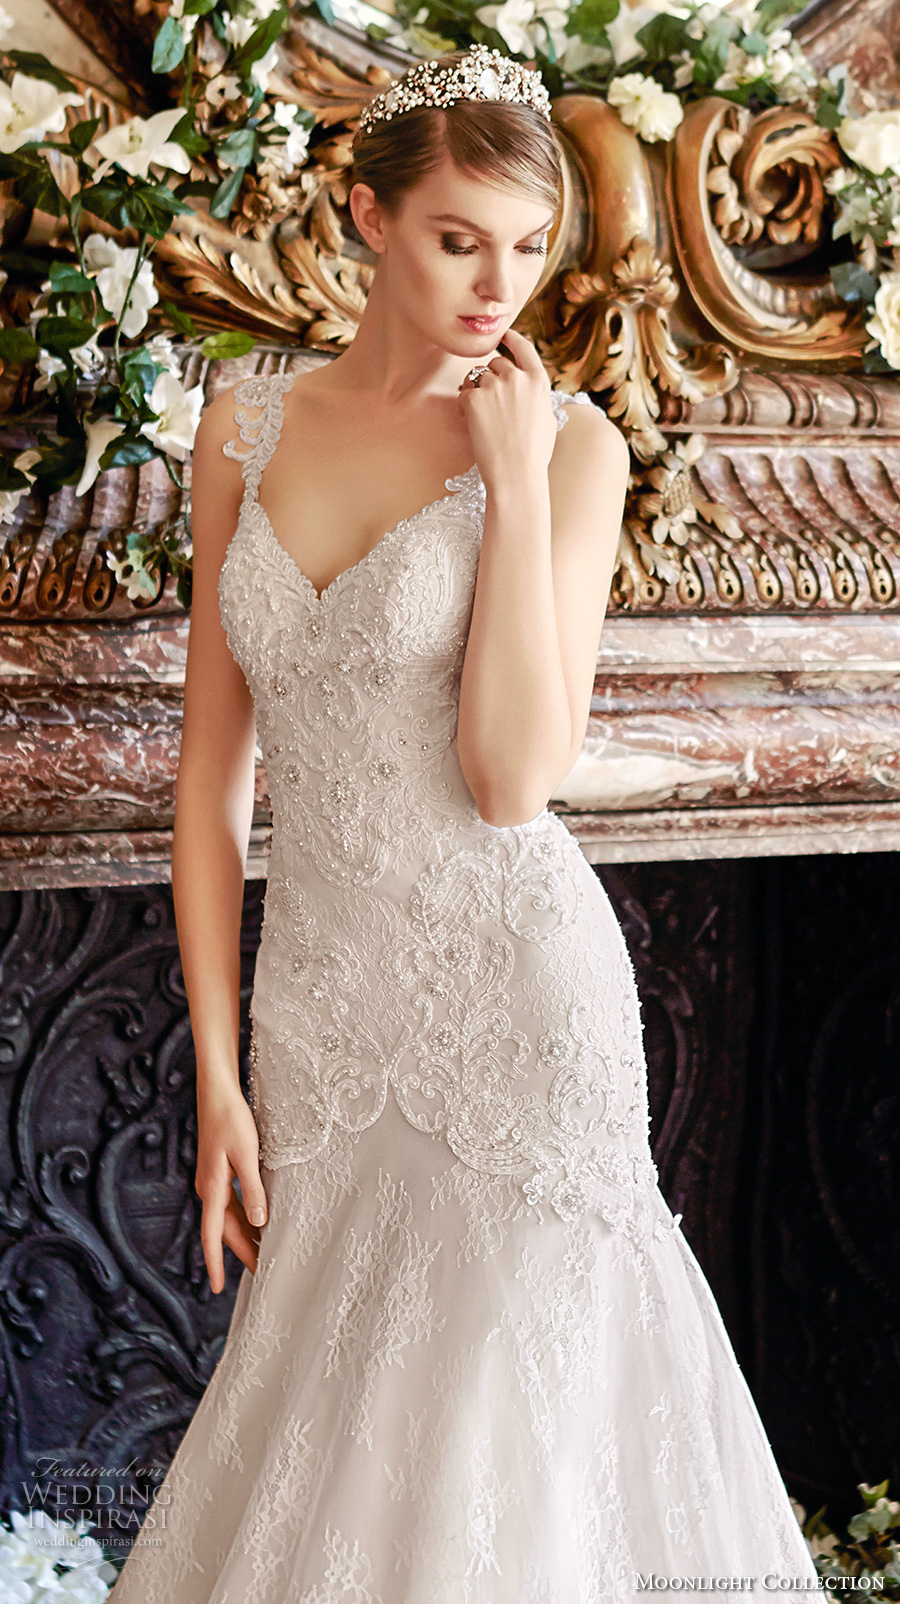 moonlight collection fall 2016 bridal sleeveless lace strap v neck heavily embellished bodice mermaid wedding dress open back cathedral train (j6436) zv